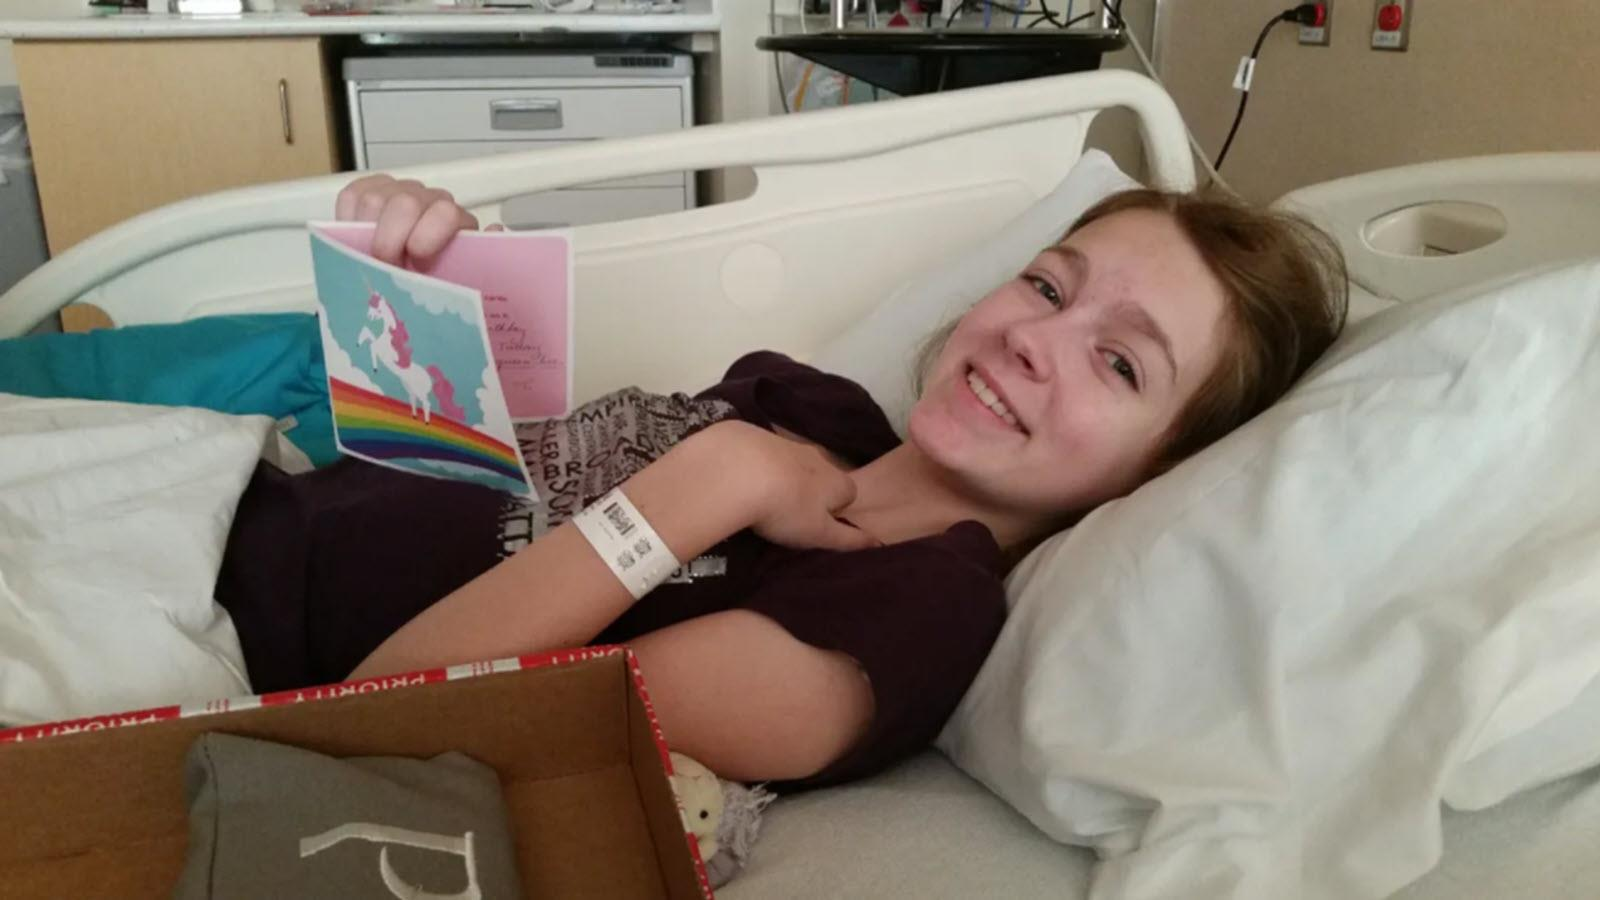 Polly, a young CIDP patient, recovers in the hospital.